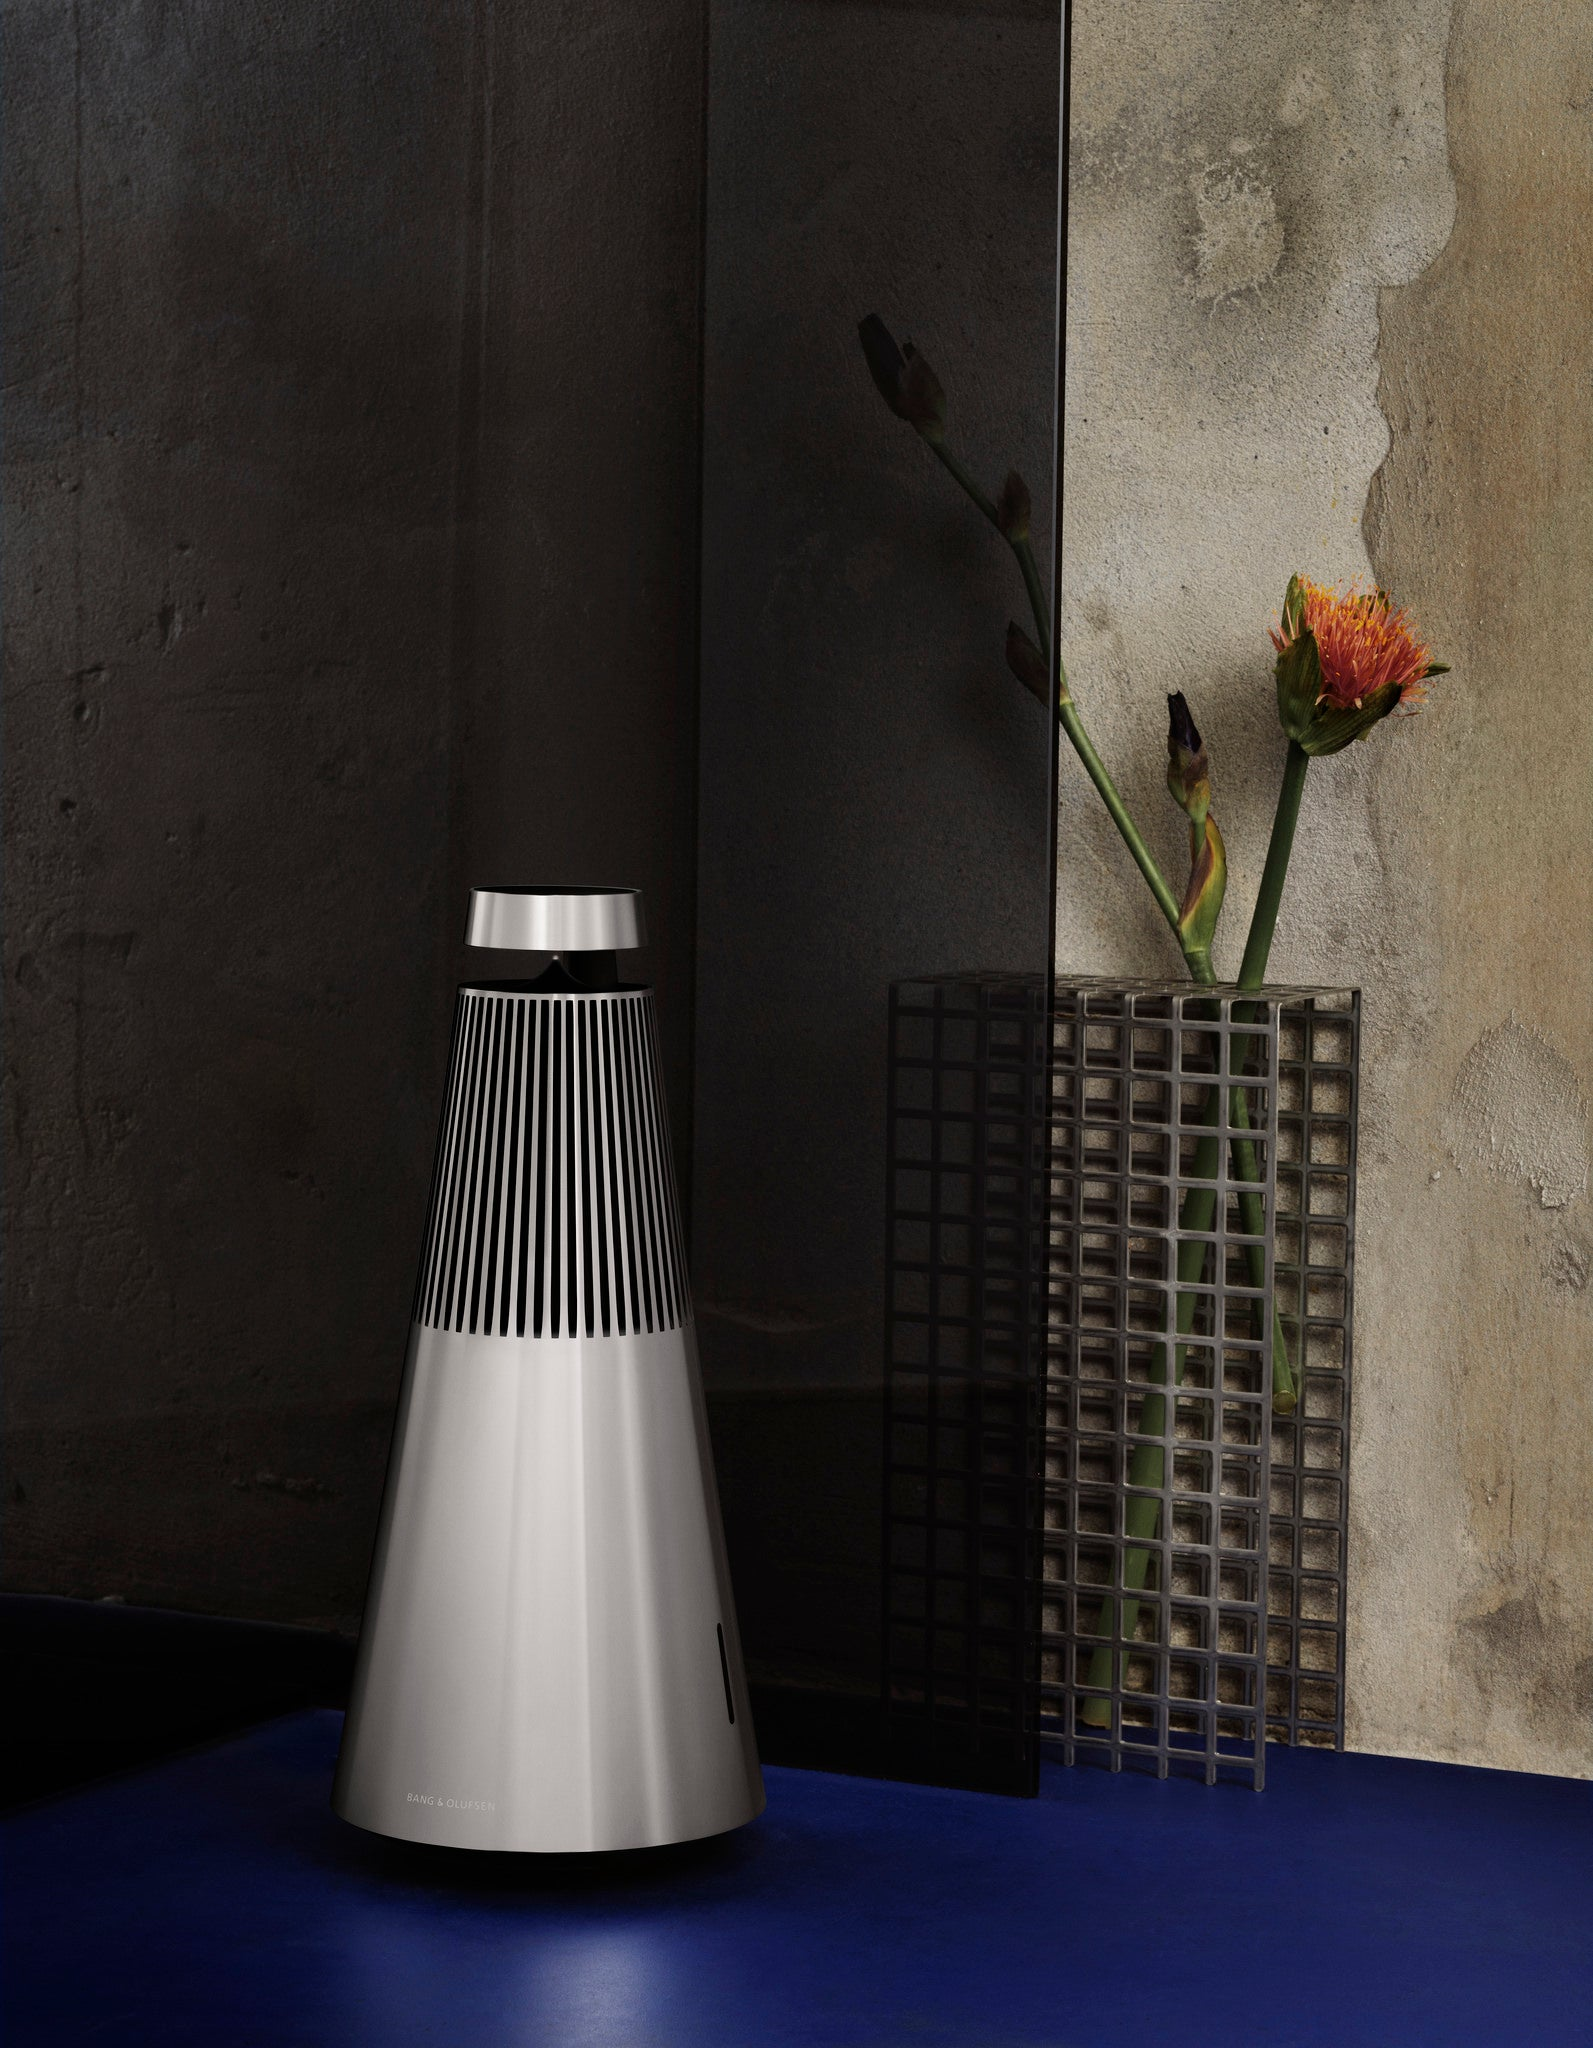 BeoSound 2 Wireless Speaker System with Google Voice Assistant